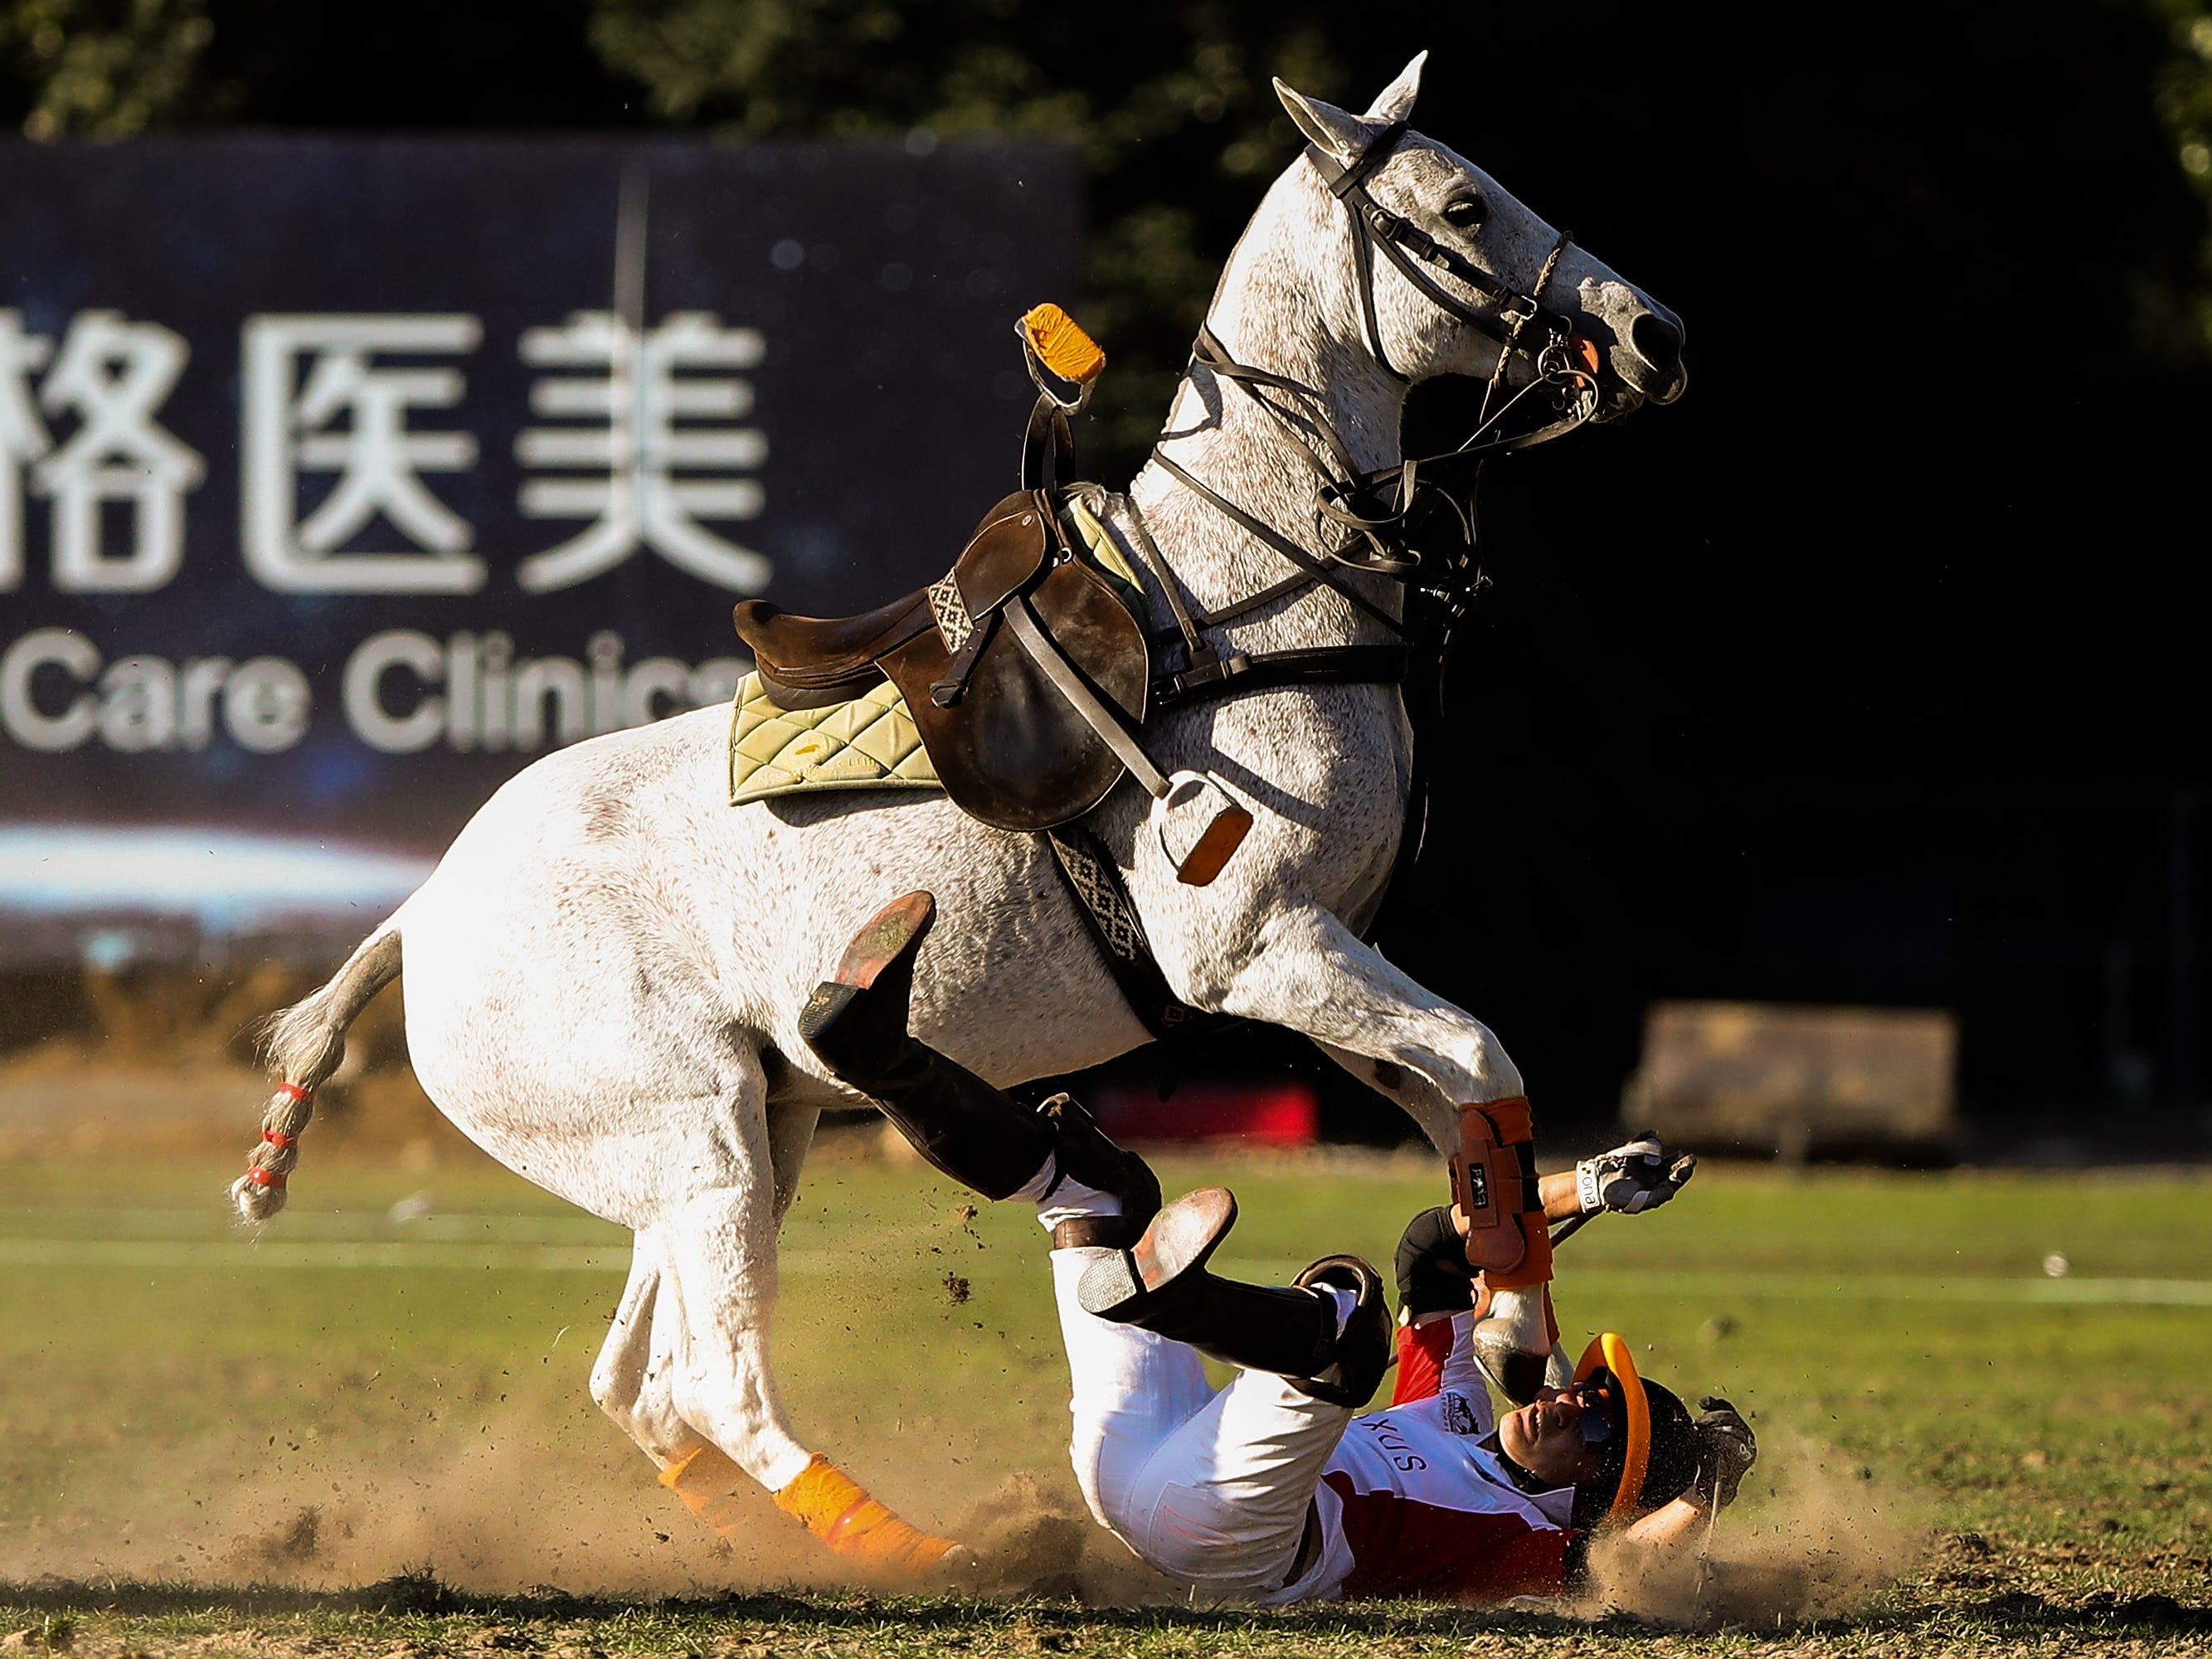 Wang Gang of Team AXUS fall down during the 2018 China Elite Polo Tournament & Argentine Republic Polo Cup match between Team AXUS and Team Fast Fish at Beijing Tang Polo Club on September 23, 2018 in Beijing, China.